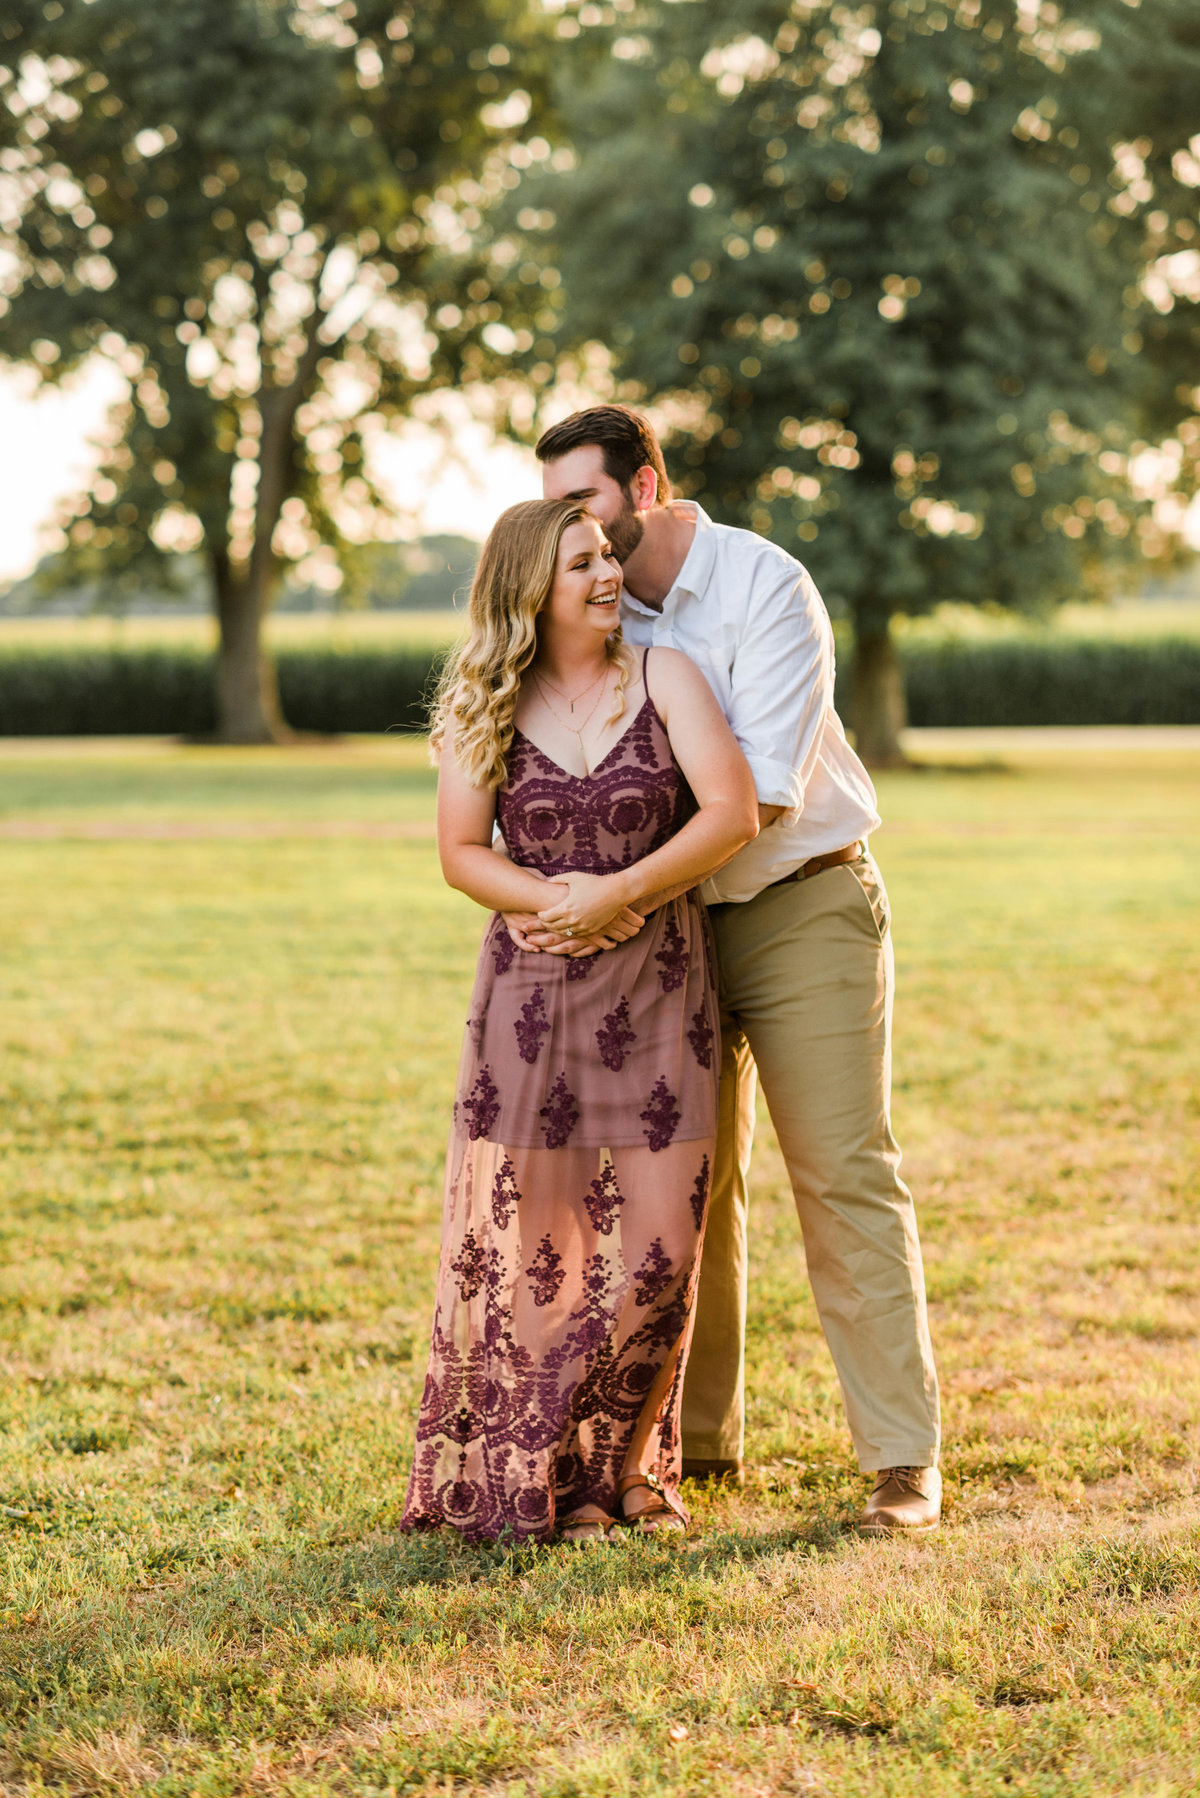 Summer_Andy_Engaged-4394